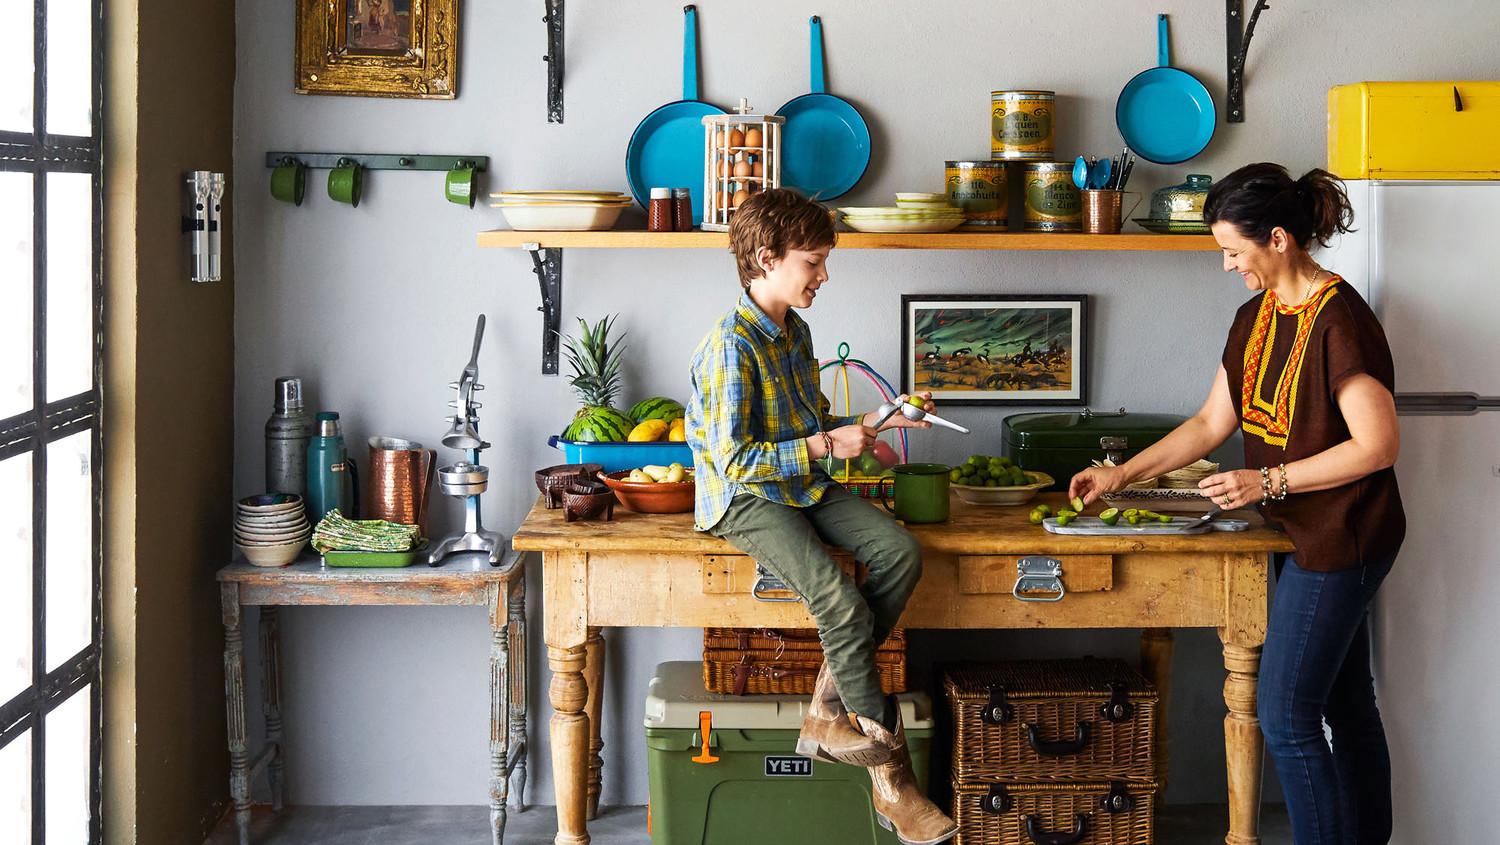 This Colorful Vacation Home Is Bursting with Cowboy Spirit